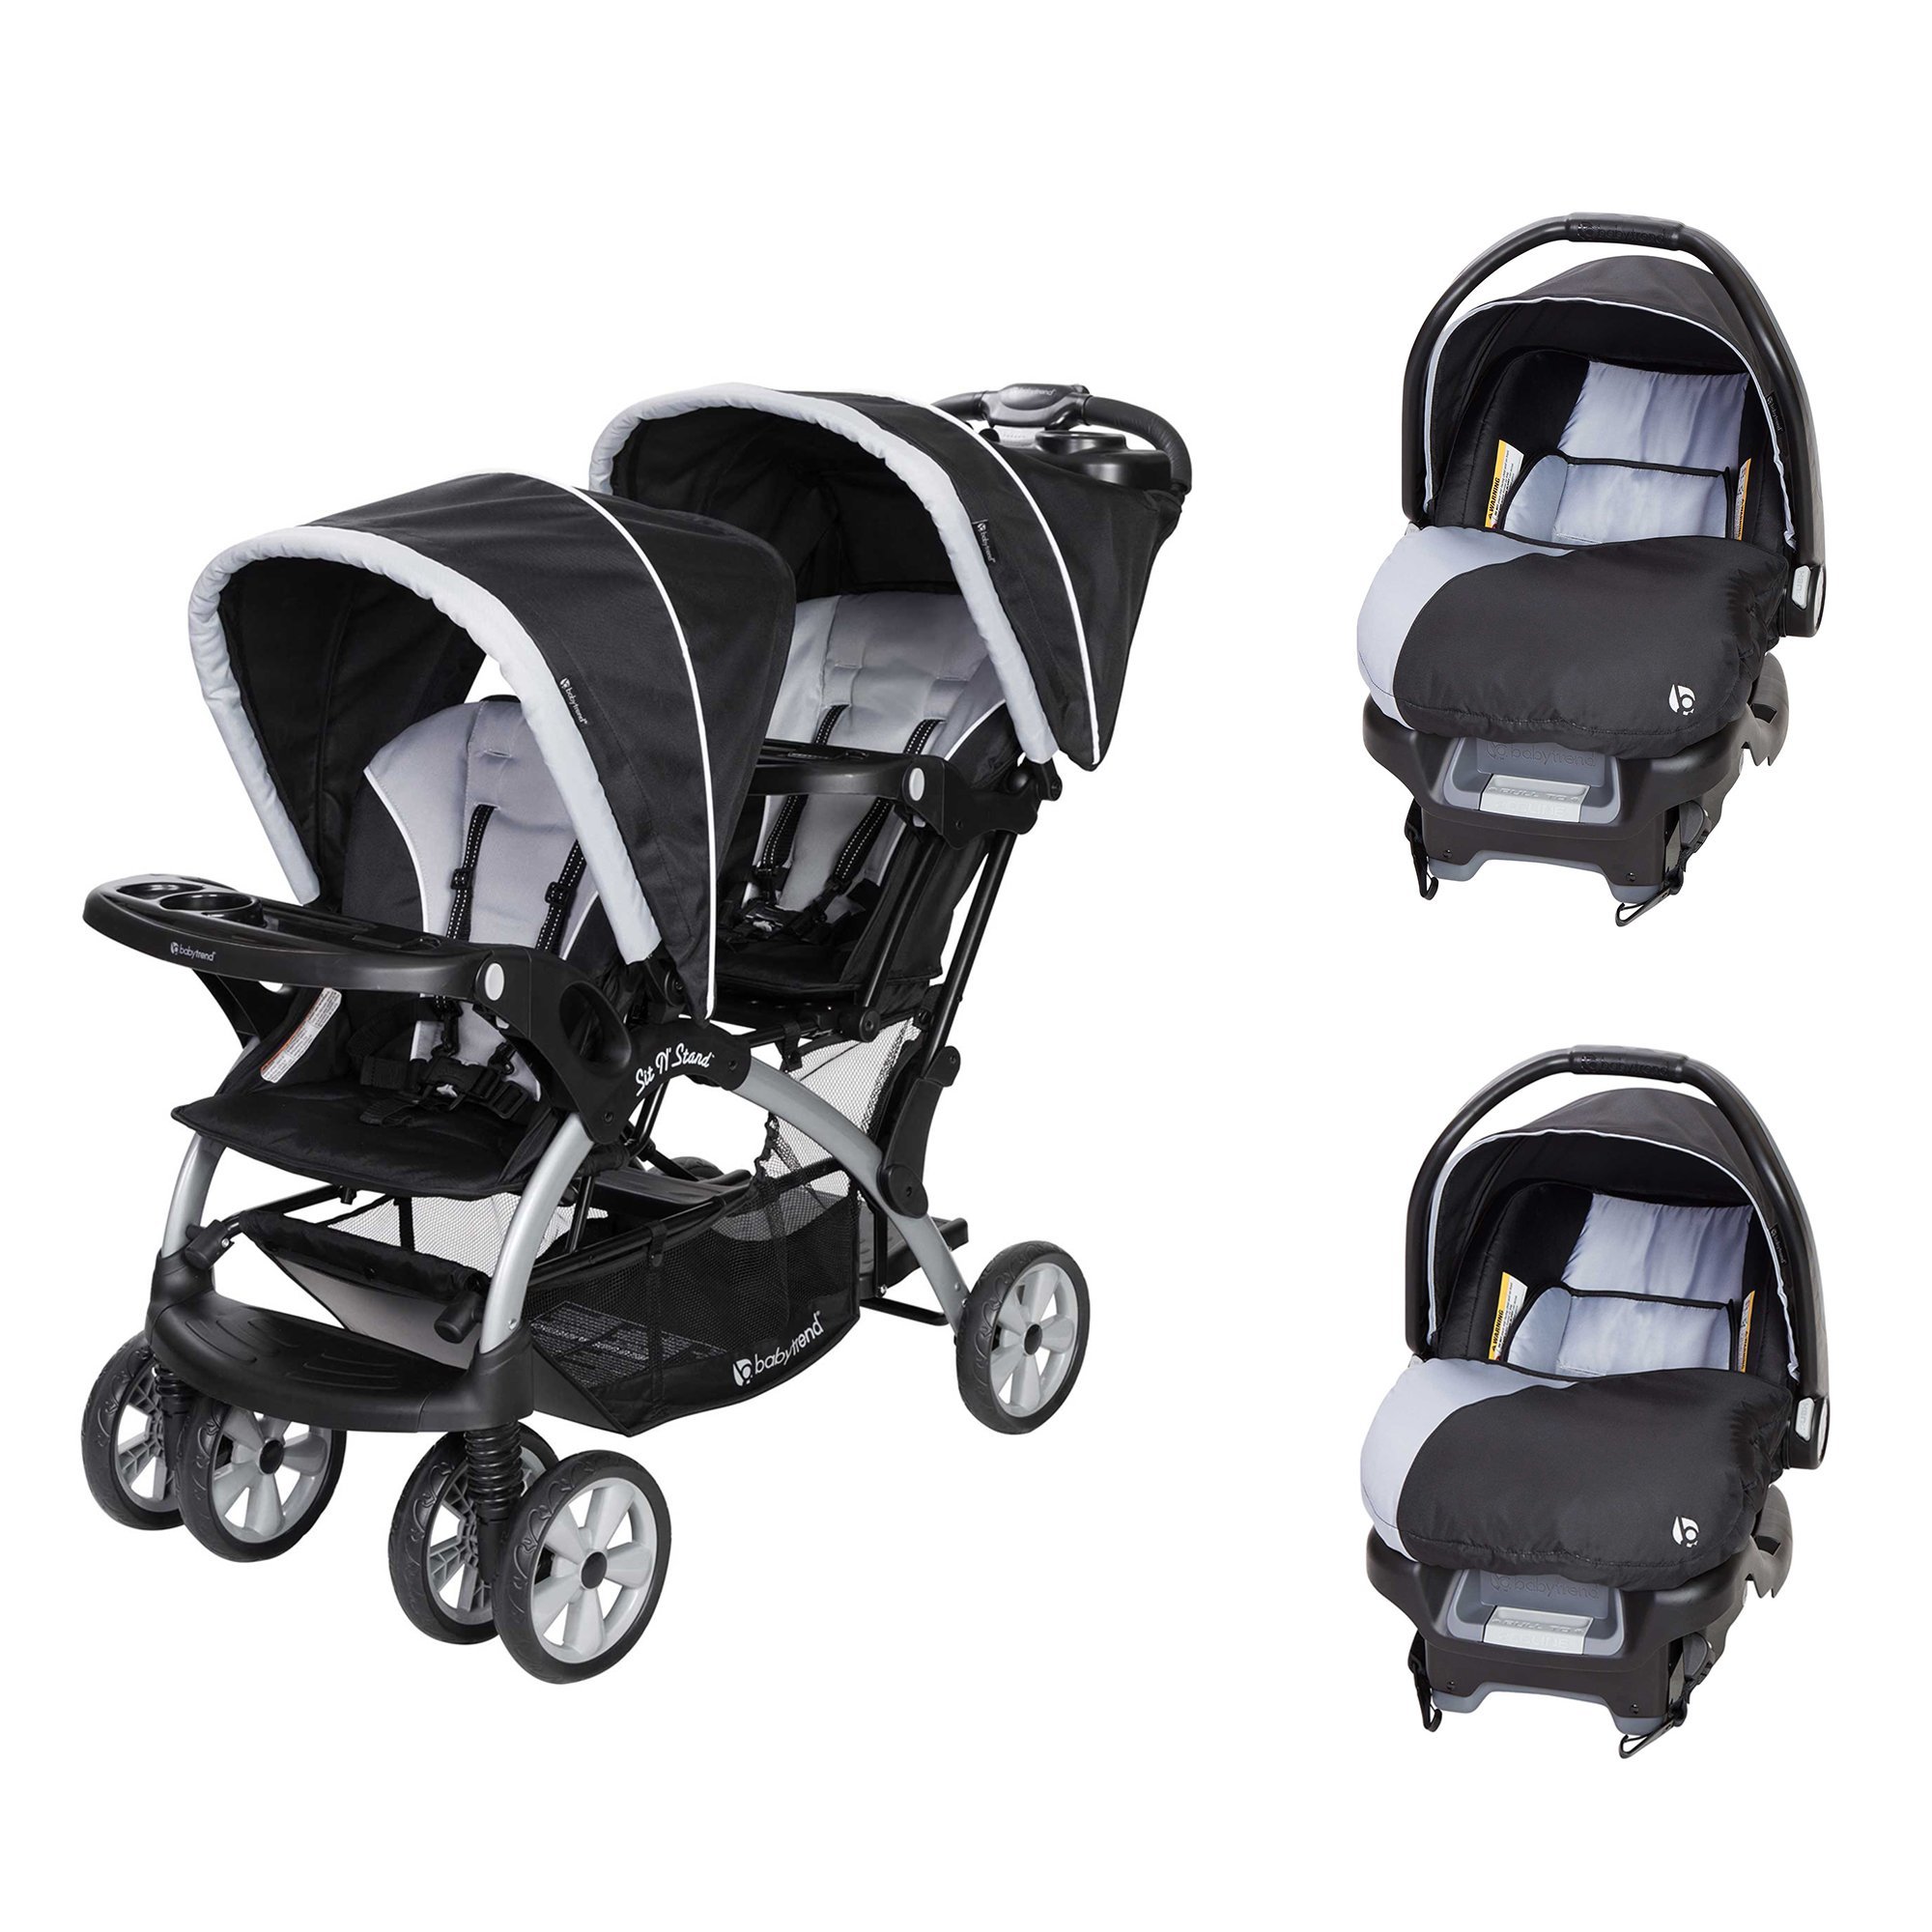 Amazon.com : Graco Pack 'n Play Playard with Twins ...